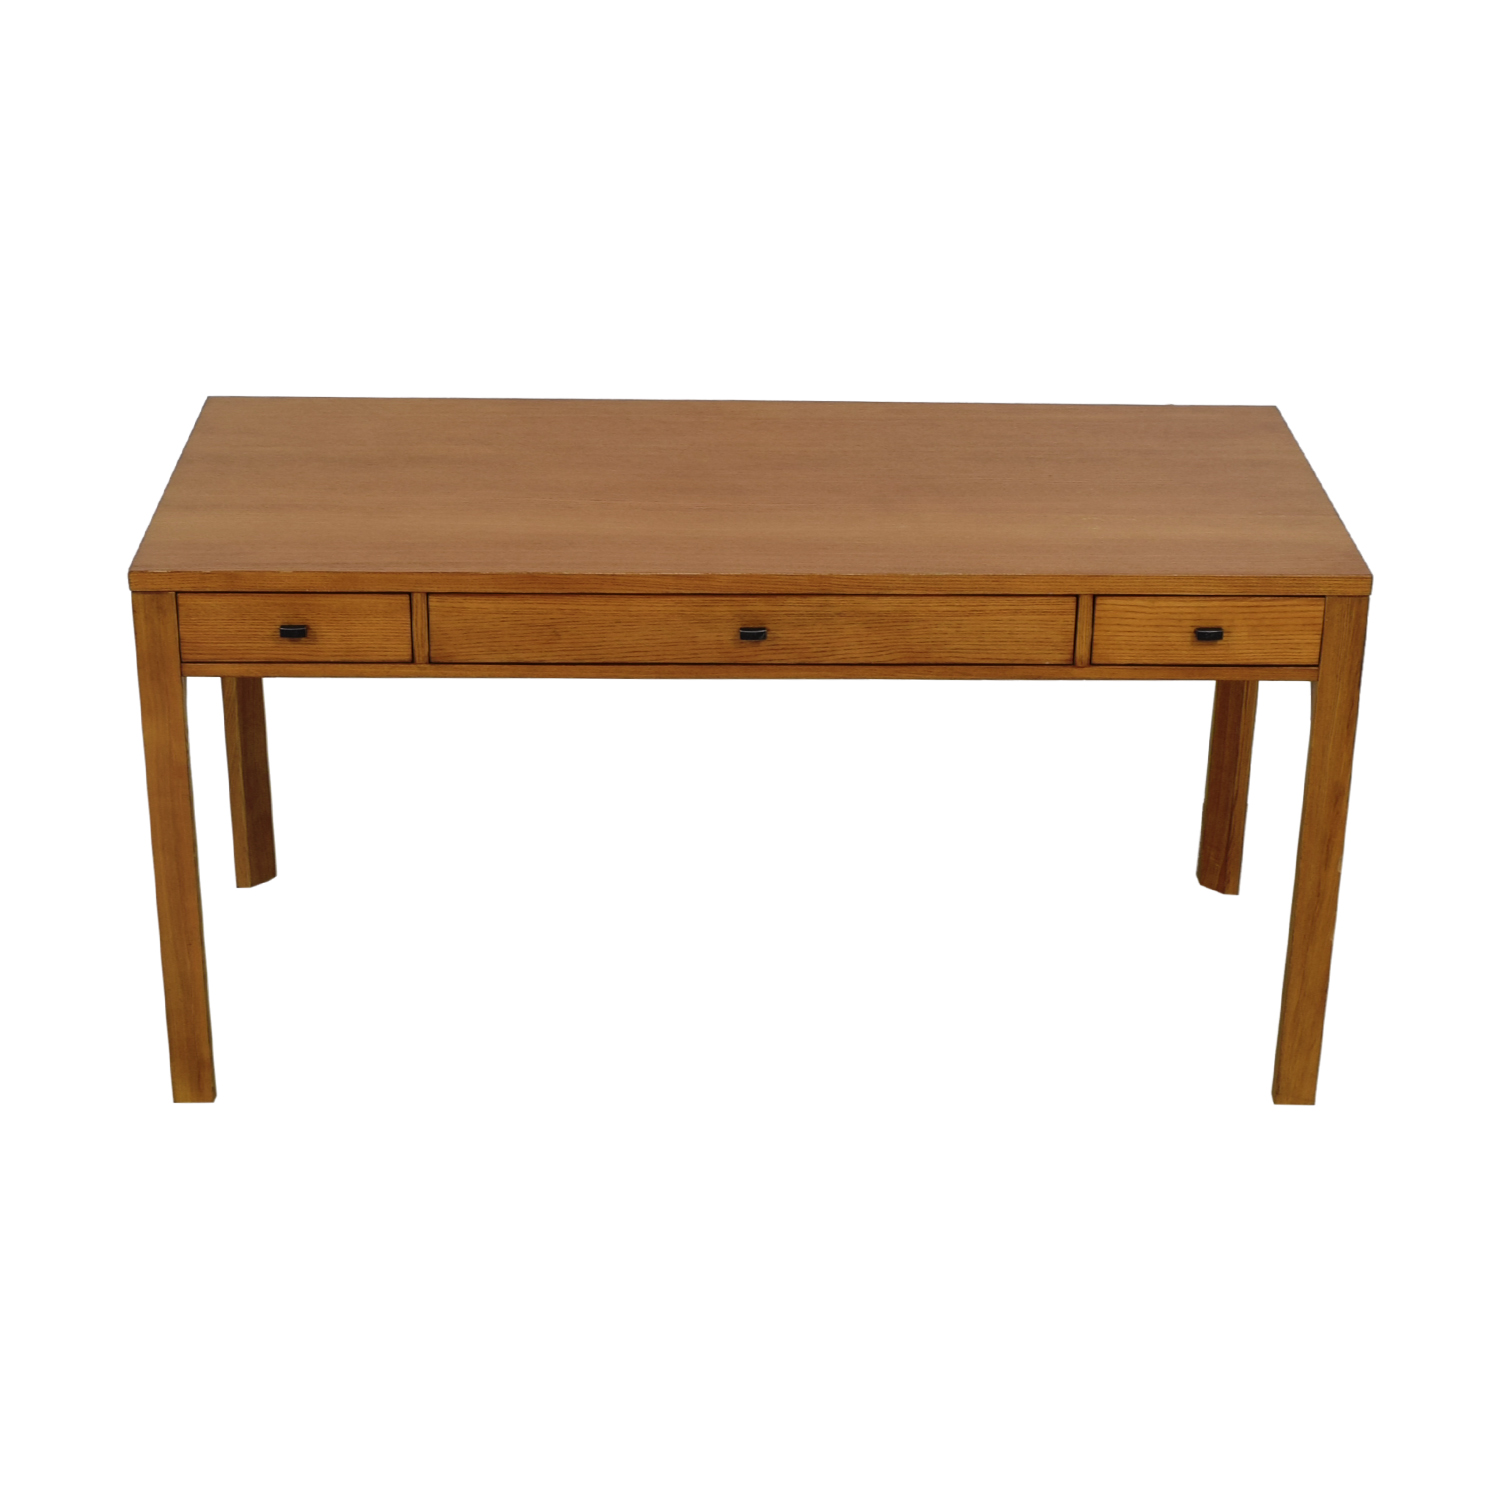 Ethan Allen Ethan Allen Three-Drawer Wood Desk price